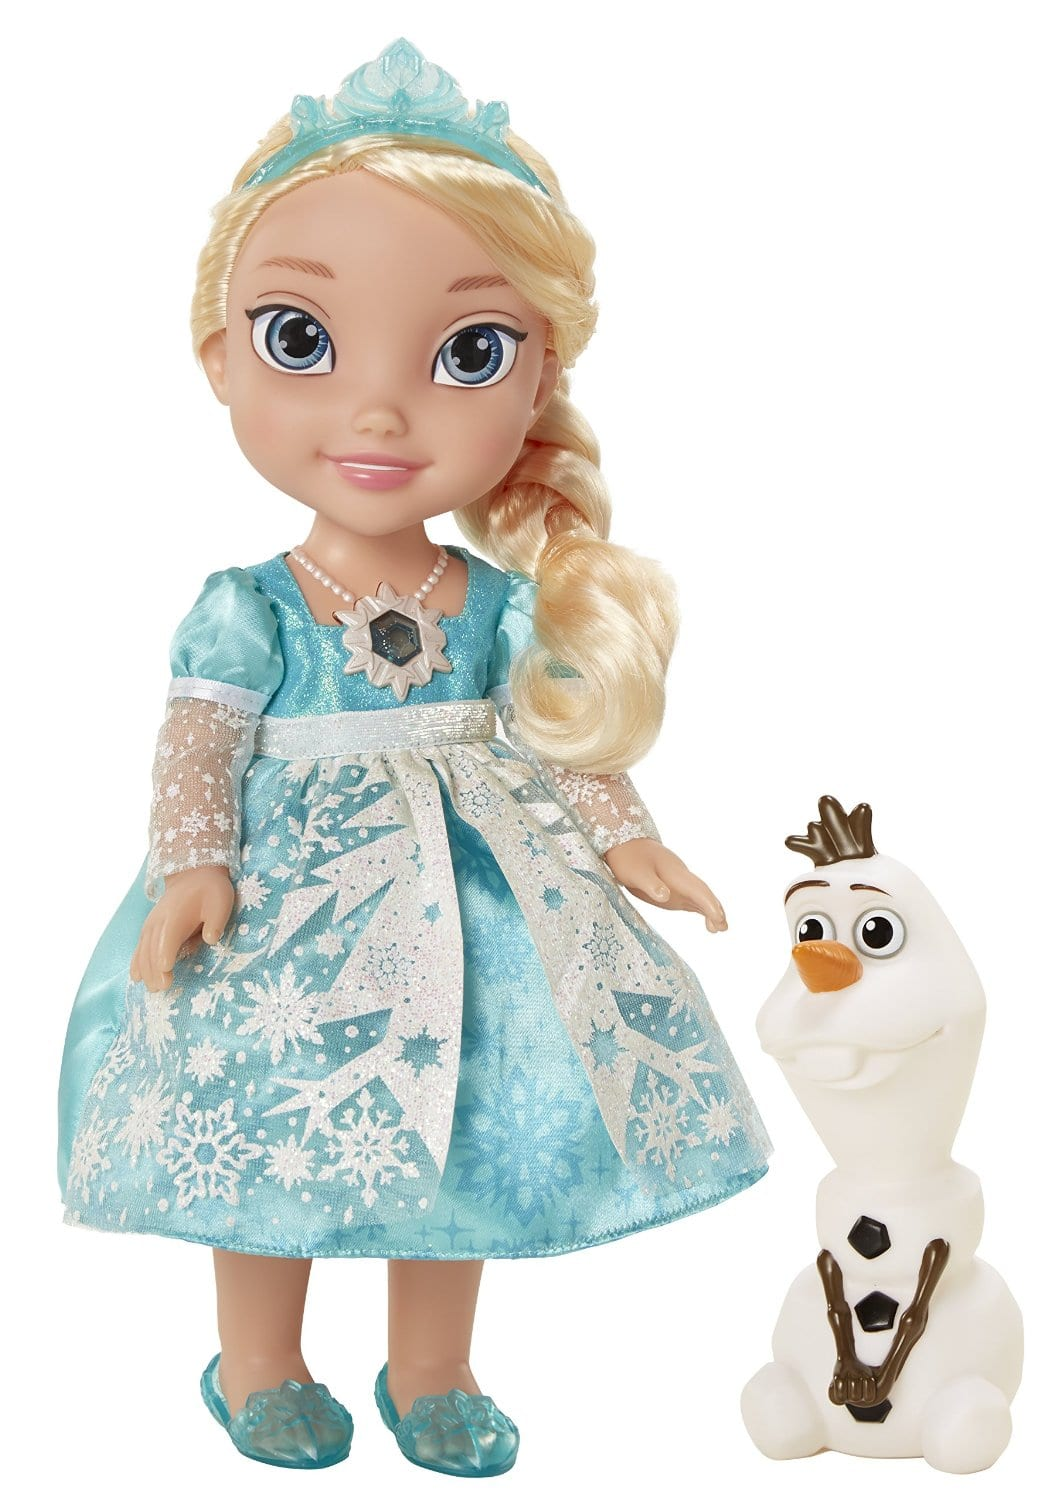 Disney Frozen Snow Glow Elsa Doll  $29 + Free Store Pickup